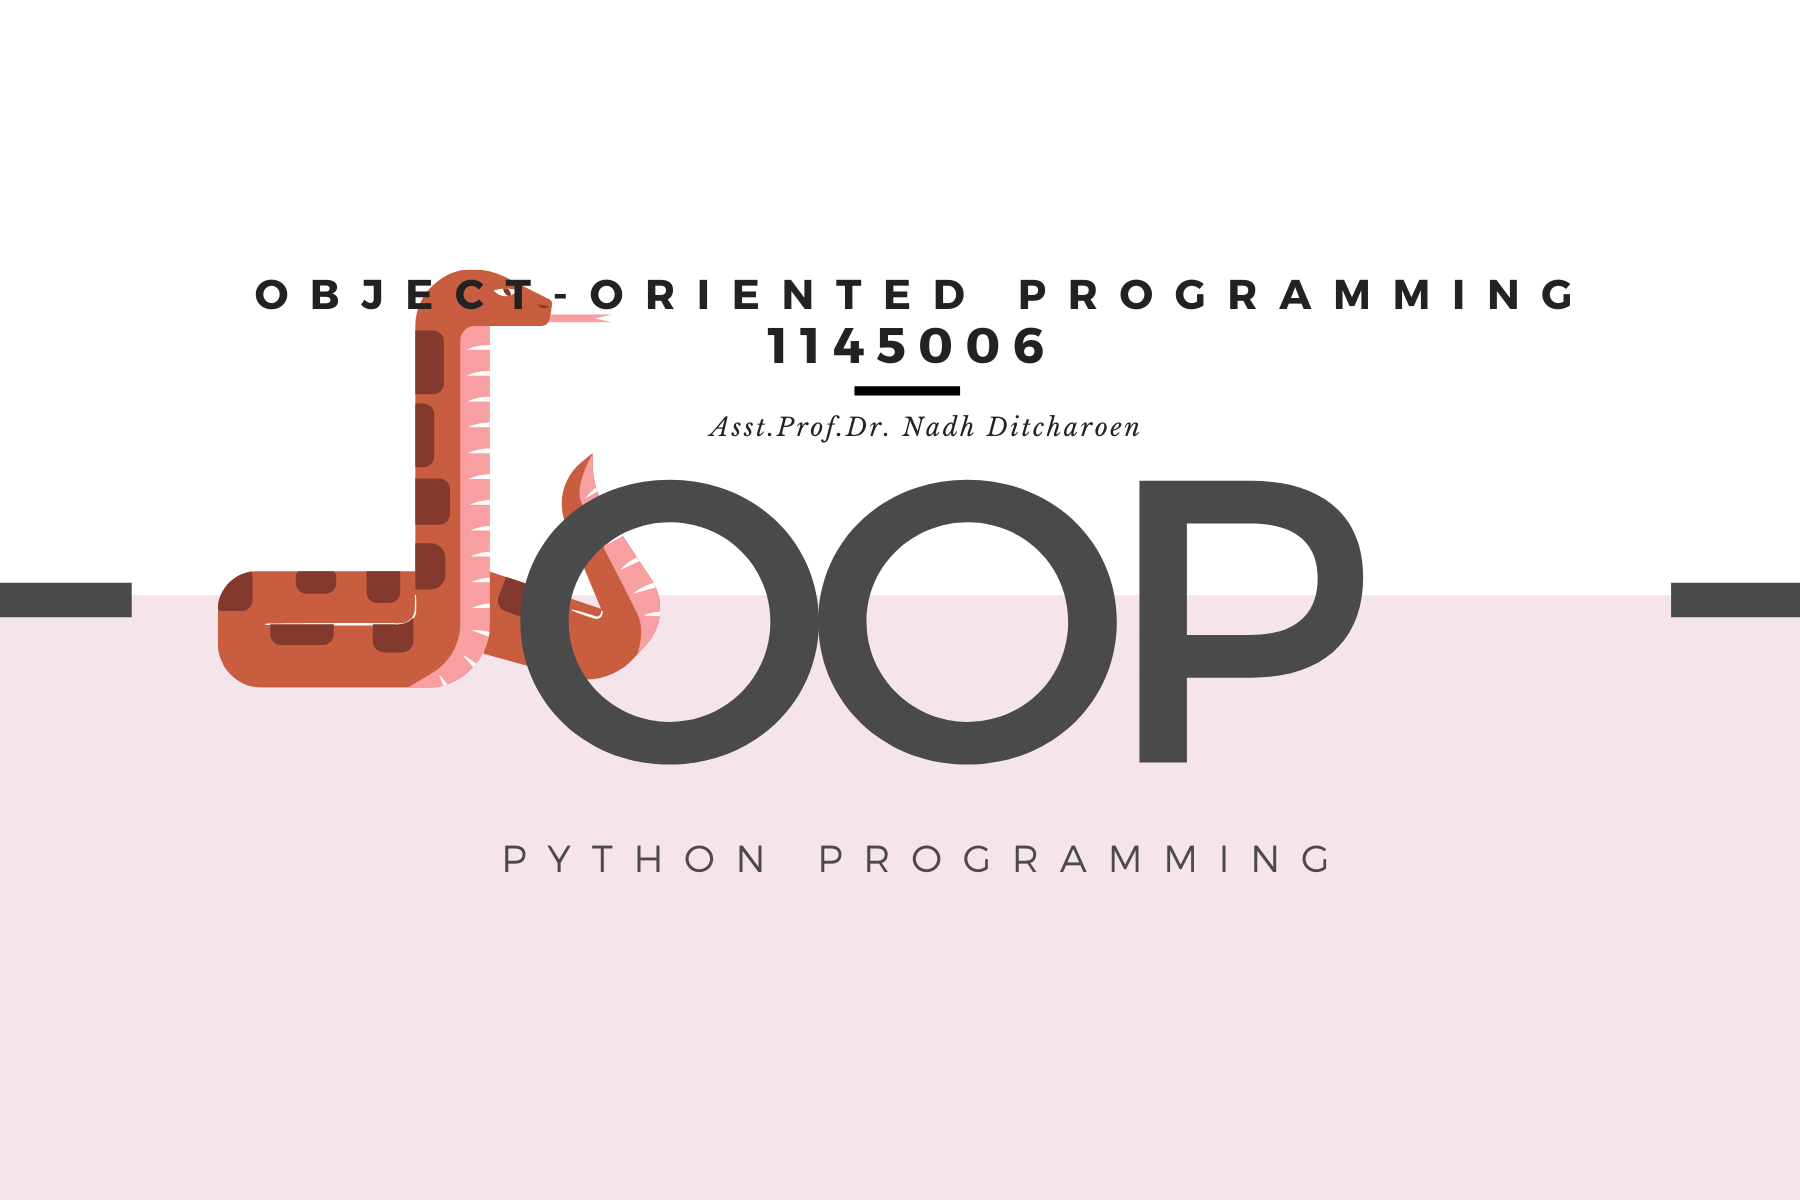 1145006 Object-Oriented Programming (ICT)